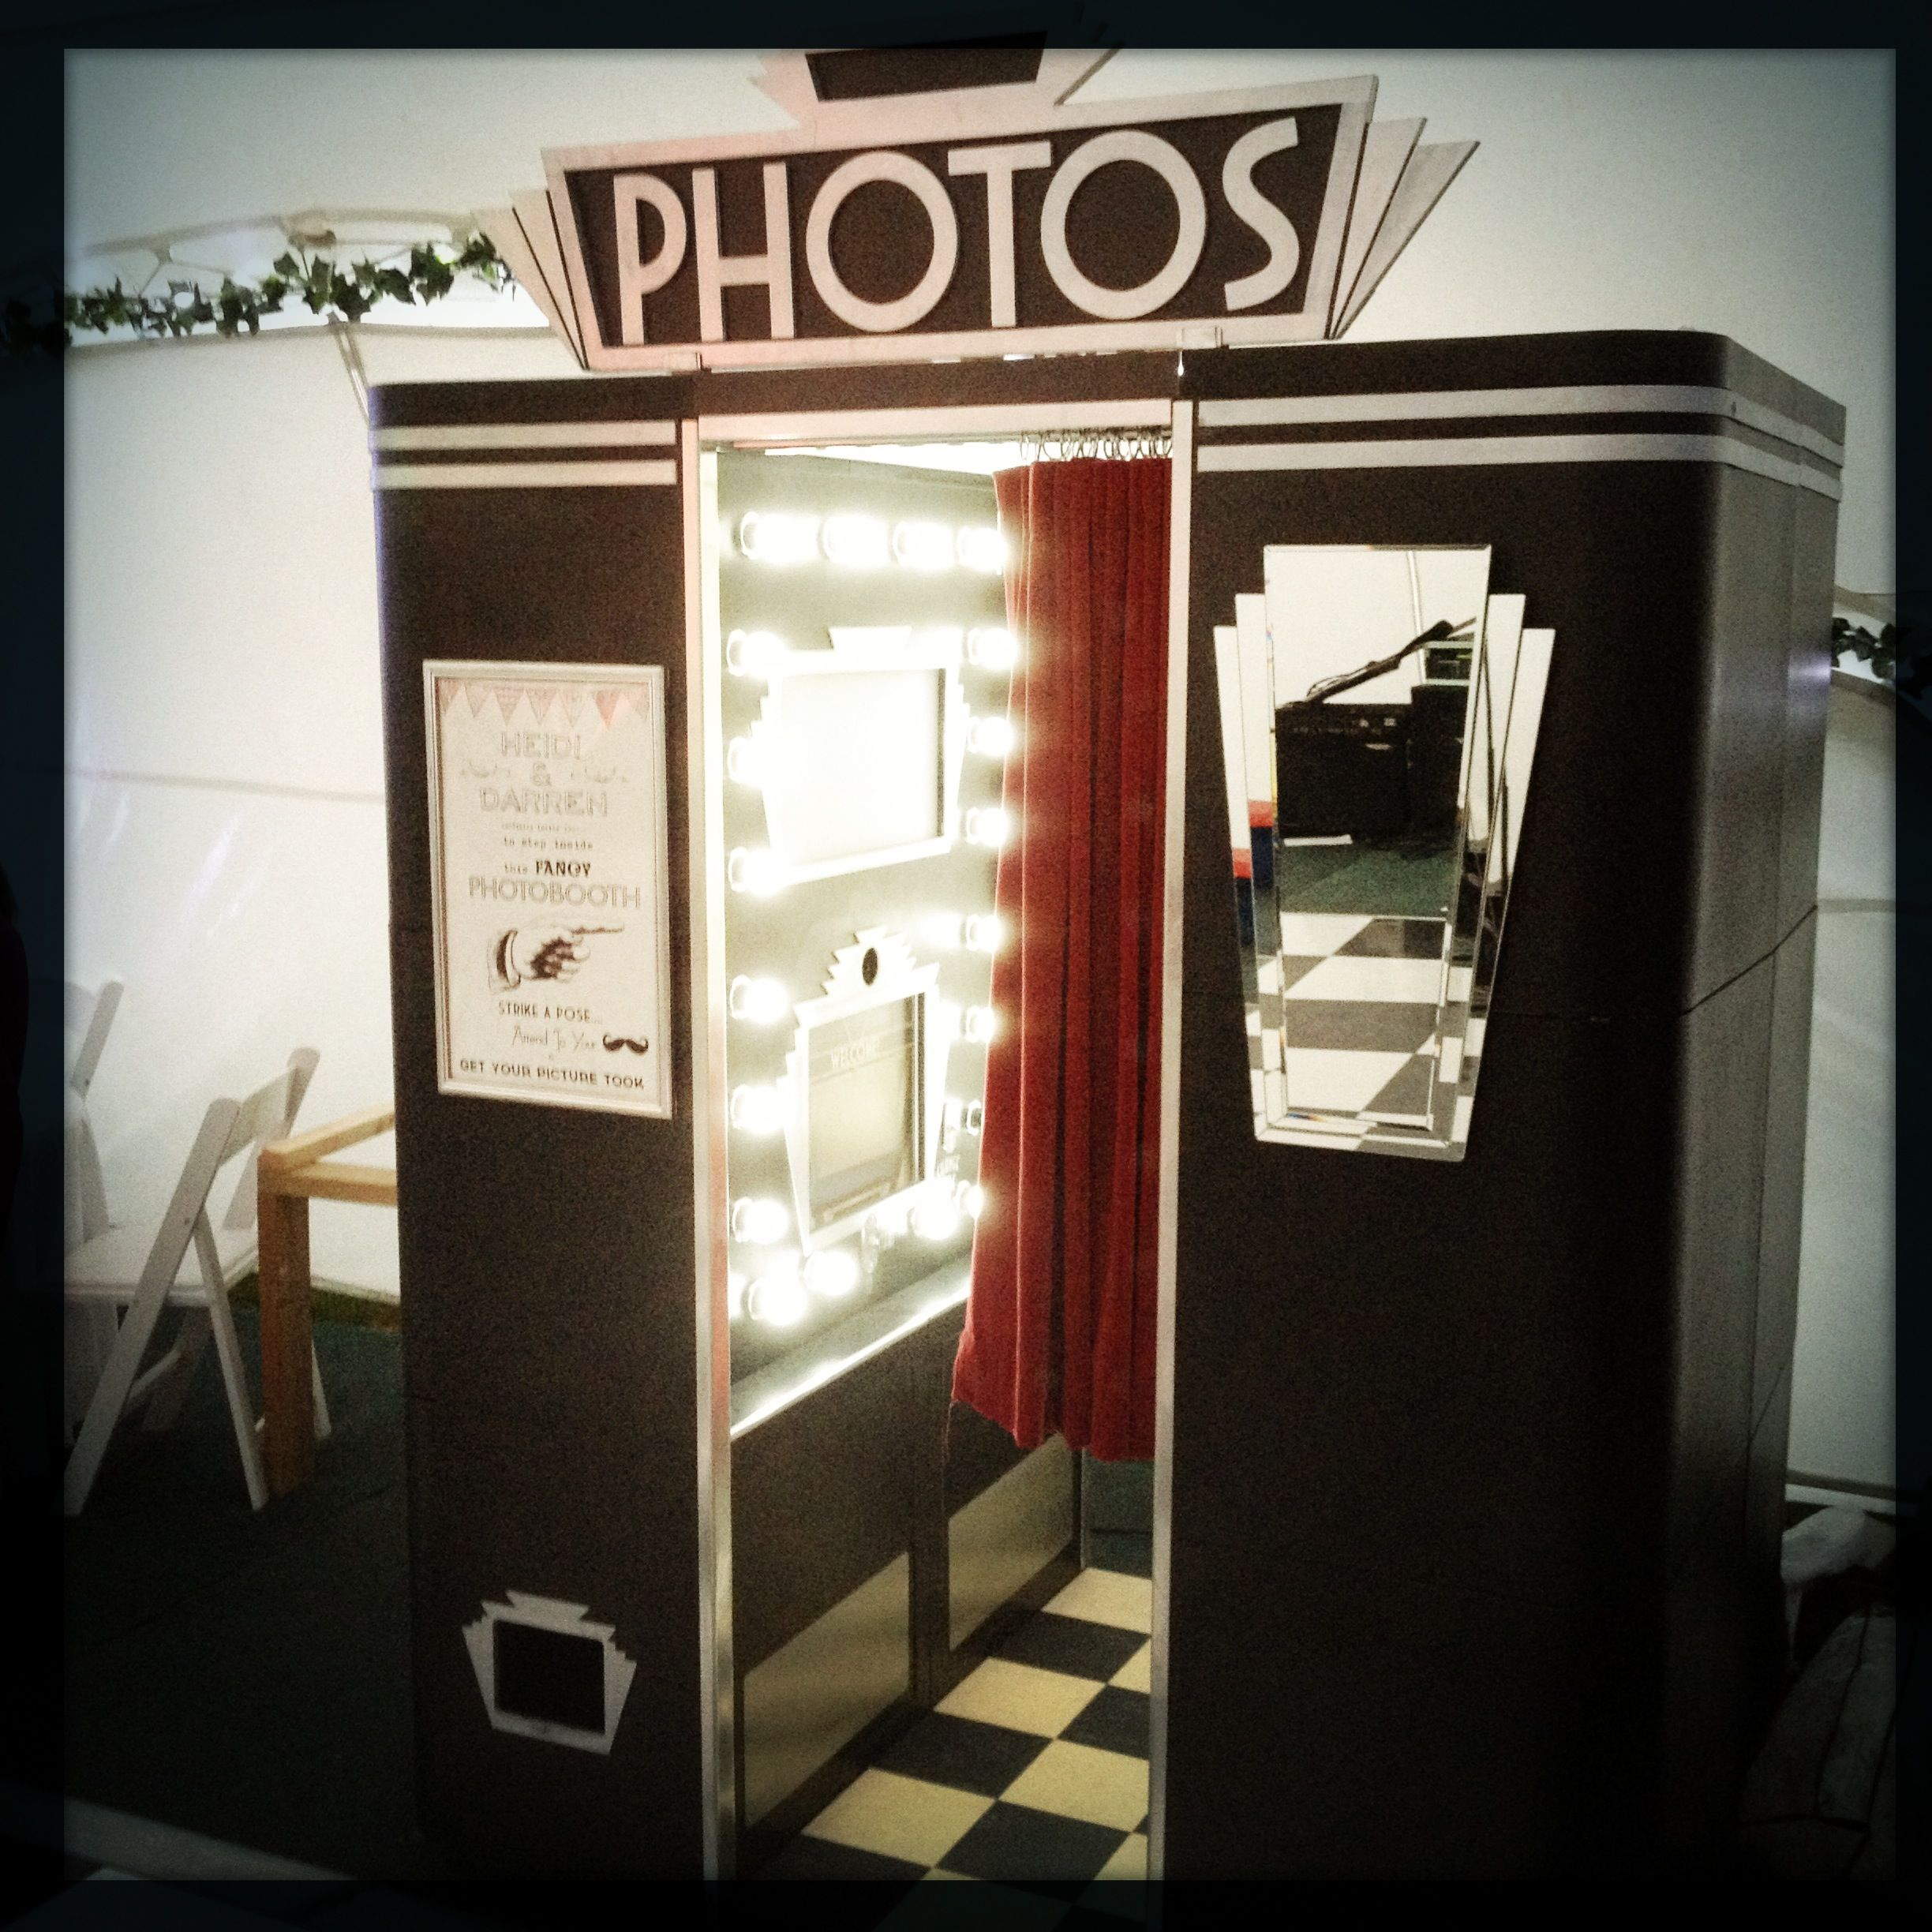 Our New Art Deco Themed Wonder Of A Photobooth Is Now Up U0026